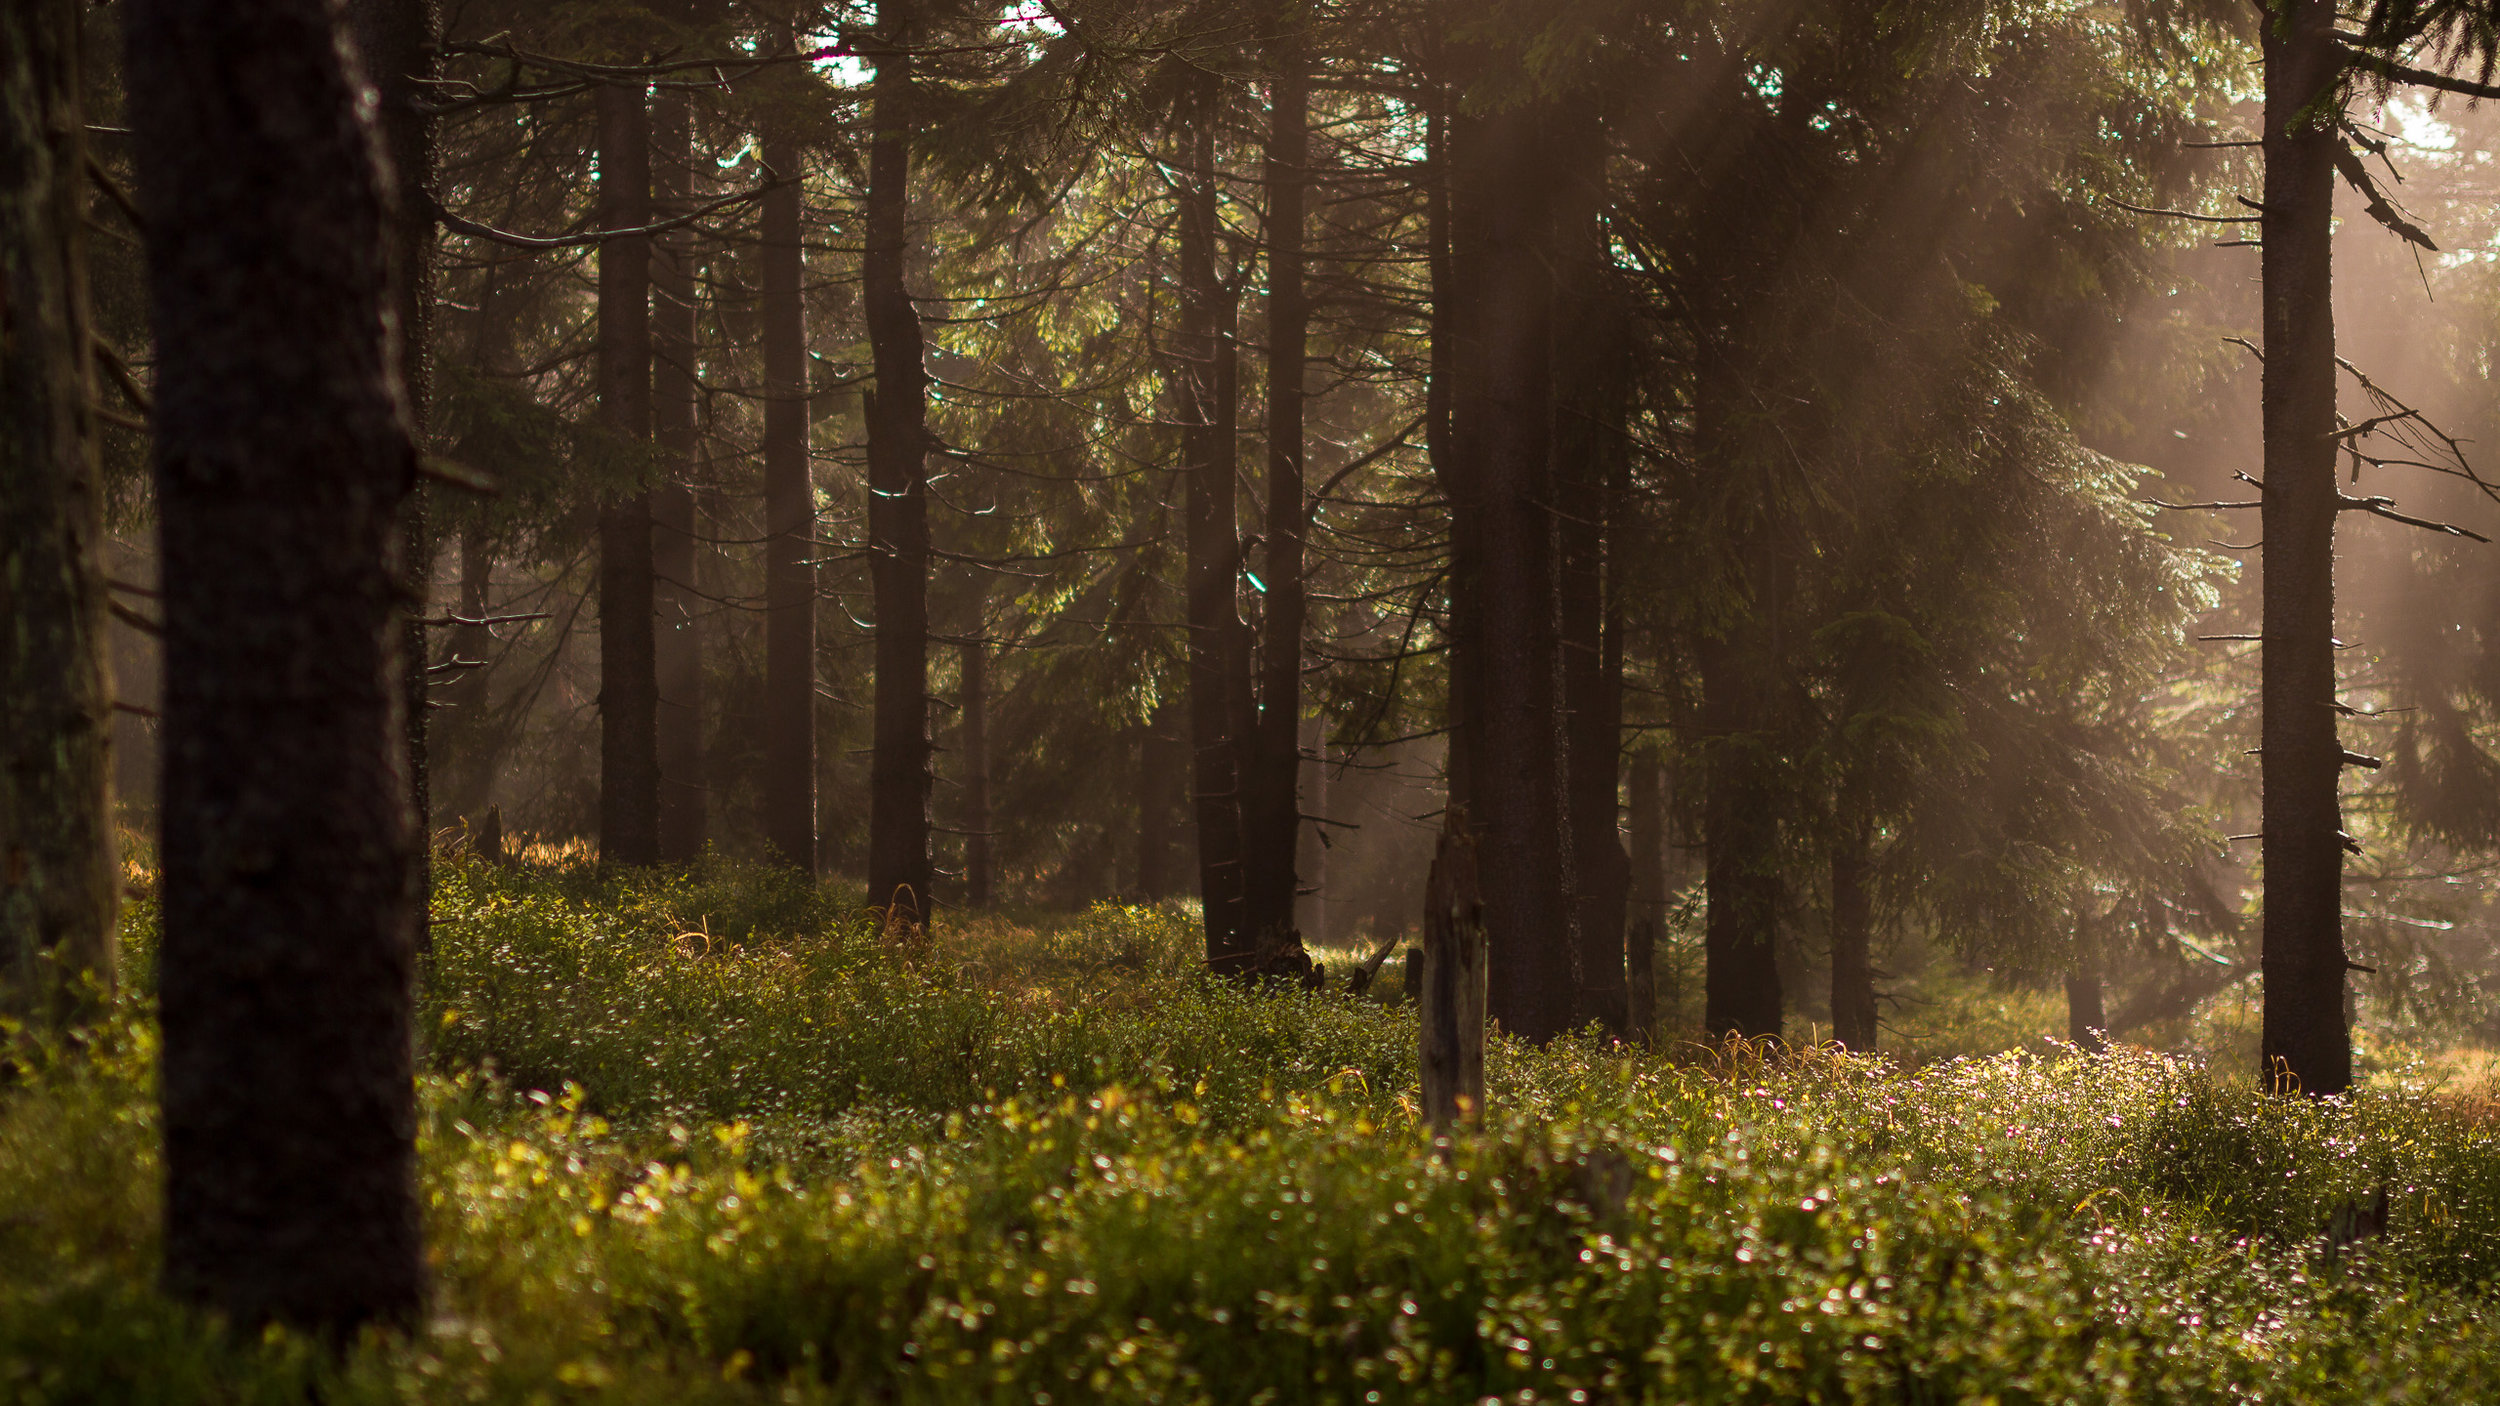 our ultimate vision is to re-forest the planet -